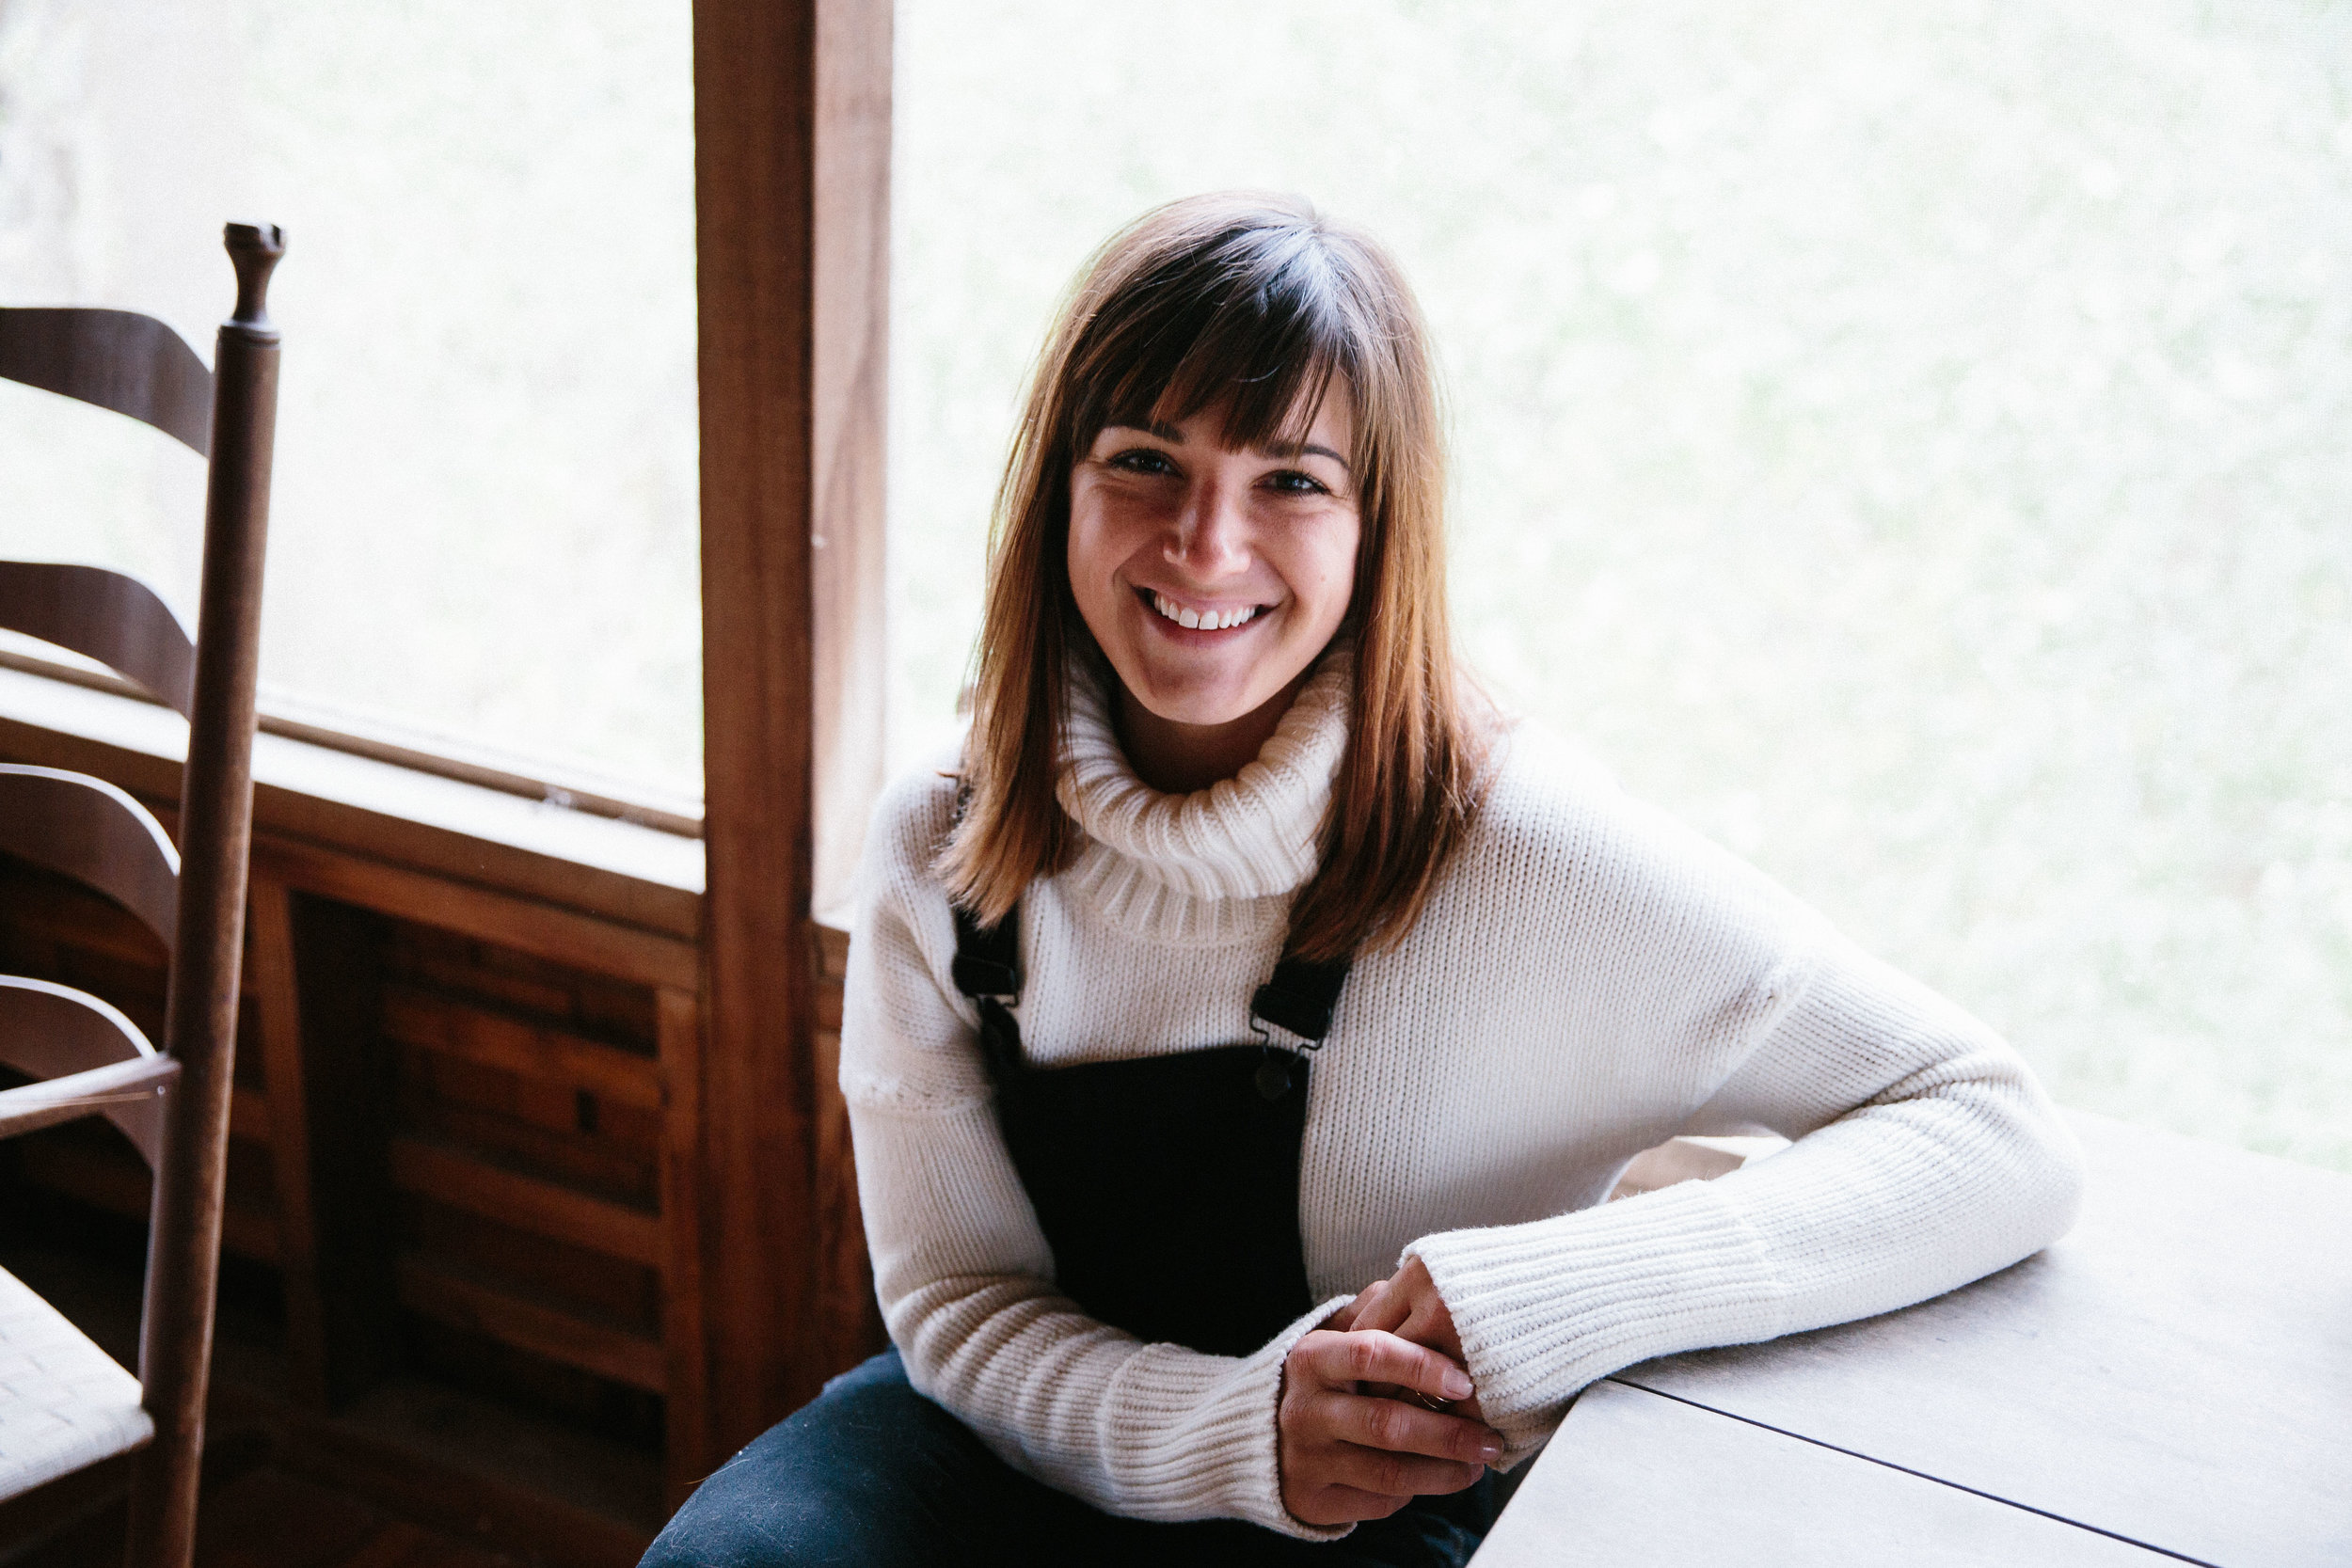 FOUNDER   Lisa works as a freelance creative, event planner, catering supervisor, hospitality consultant and hospice photographer. She jokes that her home is wherever her work takes her, however she currently resides in the Twin Cities.  A former non-profit professional, Lisa has always pursued work that's mission driven and allows her to live out her values. Lisa saw an opportunity to create a meaningful, transformative company that redefines how we travel. Living in the cities, she belongs to several sub communities across the non-profit world, coffee gurus, and service industry folks. She finds a great sense of community within these spaces, which reminds her that a small town spirit can be found in bigger places too.  Her hope is that Rettlers continues to grow into a community that serves to inspire people to further act on their passions, encourage rural renewal and build a bridge from place to place, big and small. Lisa's academic and professional background in sociology and environmental sustainability inform her vision of intentional hospitality as part of a greater movement towards building stronger communities, preserving natural resources, local economies, and equity within and countries ethos.  Having grown up living in-between parents residing in Rome, Georgia and Minneapolis, Lisa's reverence for travel started as soon as she could fly solo without an attendant. Today, travel brings her back home to her rural roots. What she most loves is meeting a stranger in their most favorite element and being greeted by people with passion and enthusiasm. There is something inspiring about it that fuels her work and provides an abundance of gratitude for life on this earth.